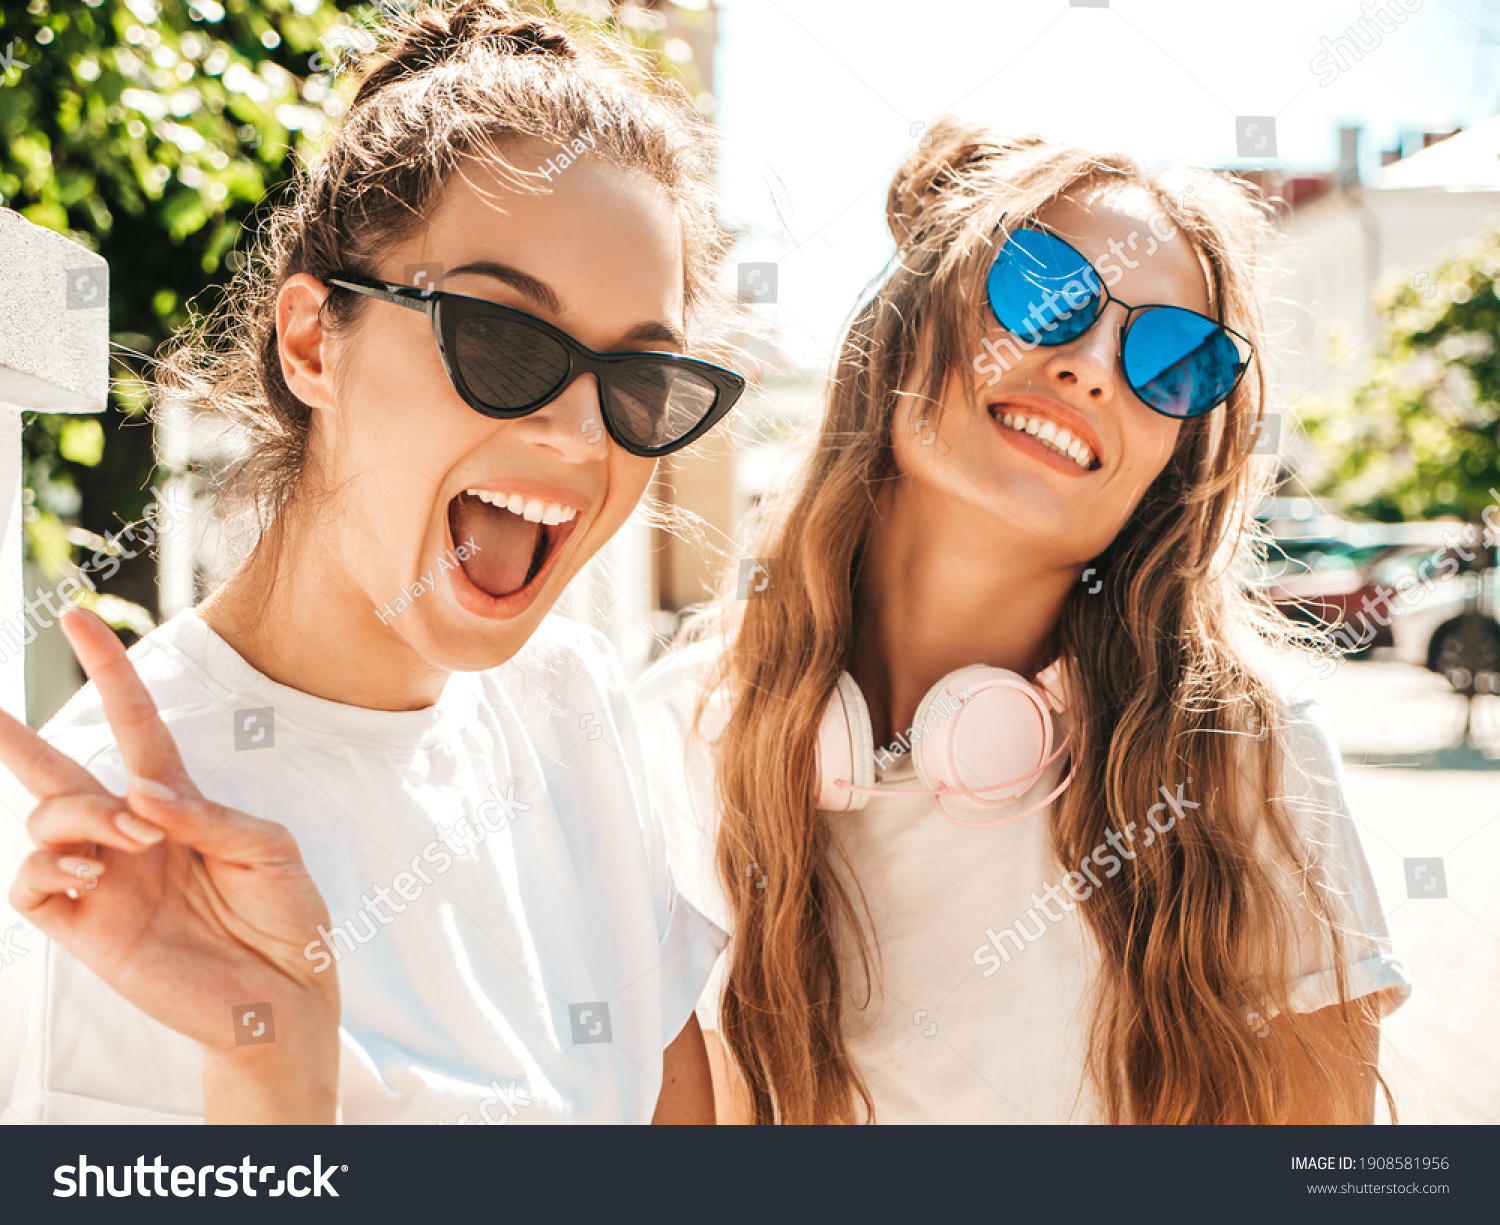 Portrait of two young beautiful smiling hipster female in trendy summer white t-shirt clothes.Sexy carefree women posing on street background. Positive models having fun, hugging and going crazy #1908581956